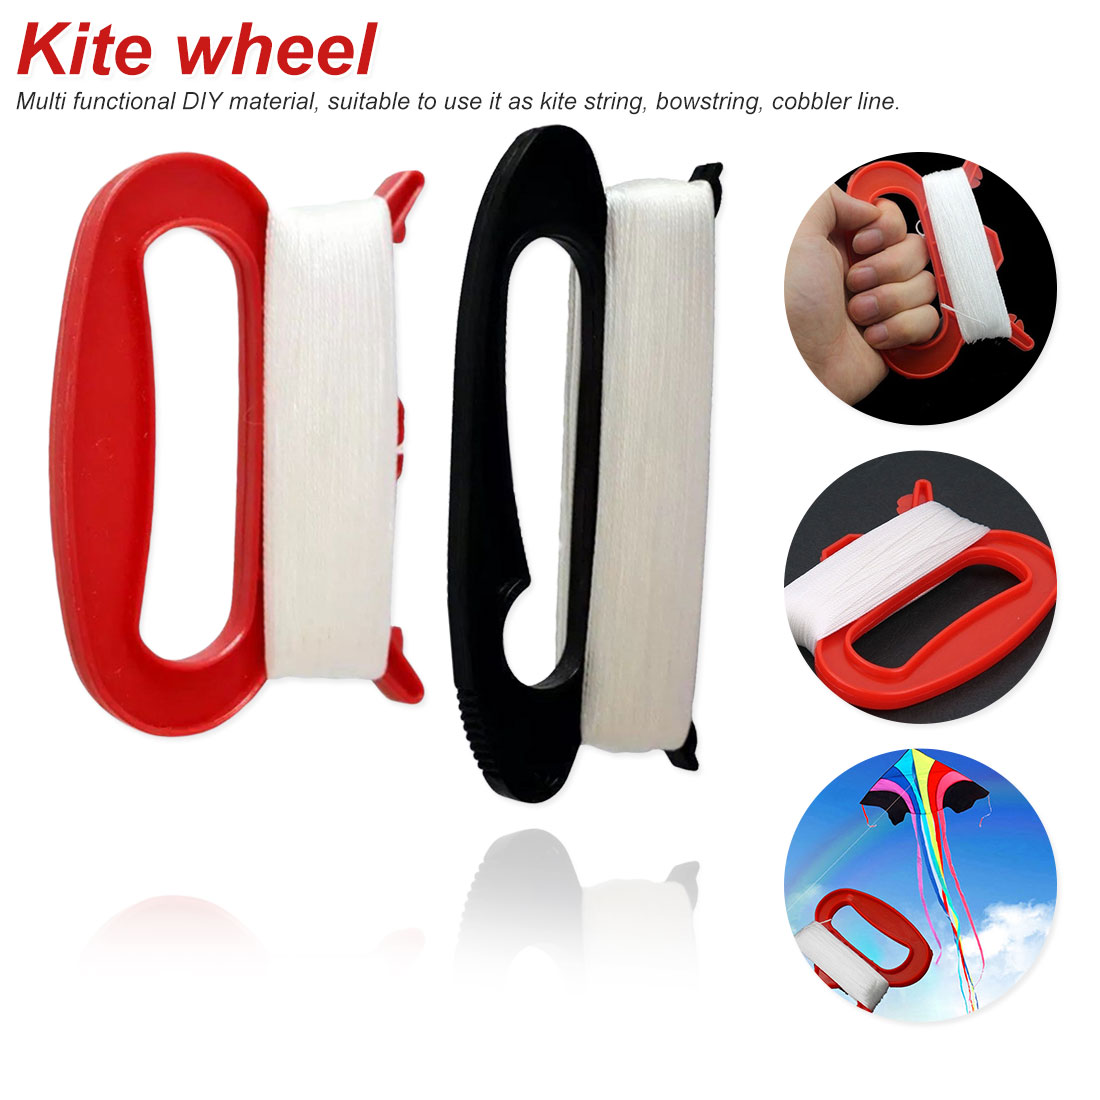 Kite Line String Winder Handle Camping Gear Kit Outdoor Board Children Kite Flying Kite Accessories